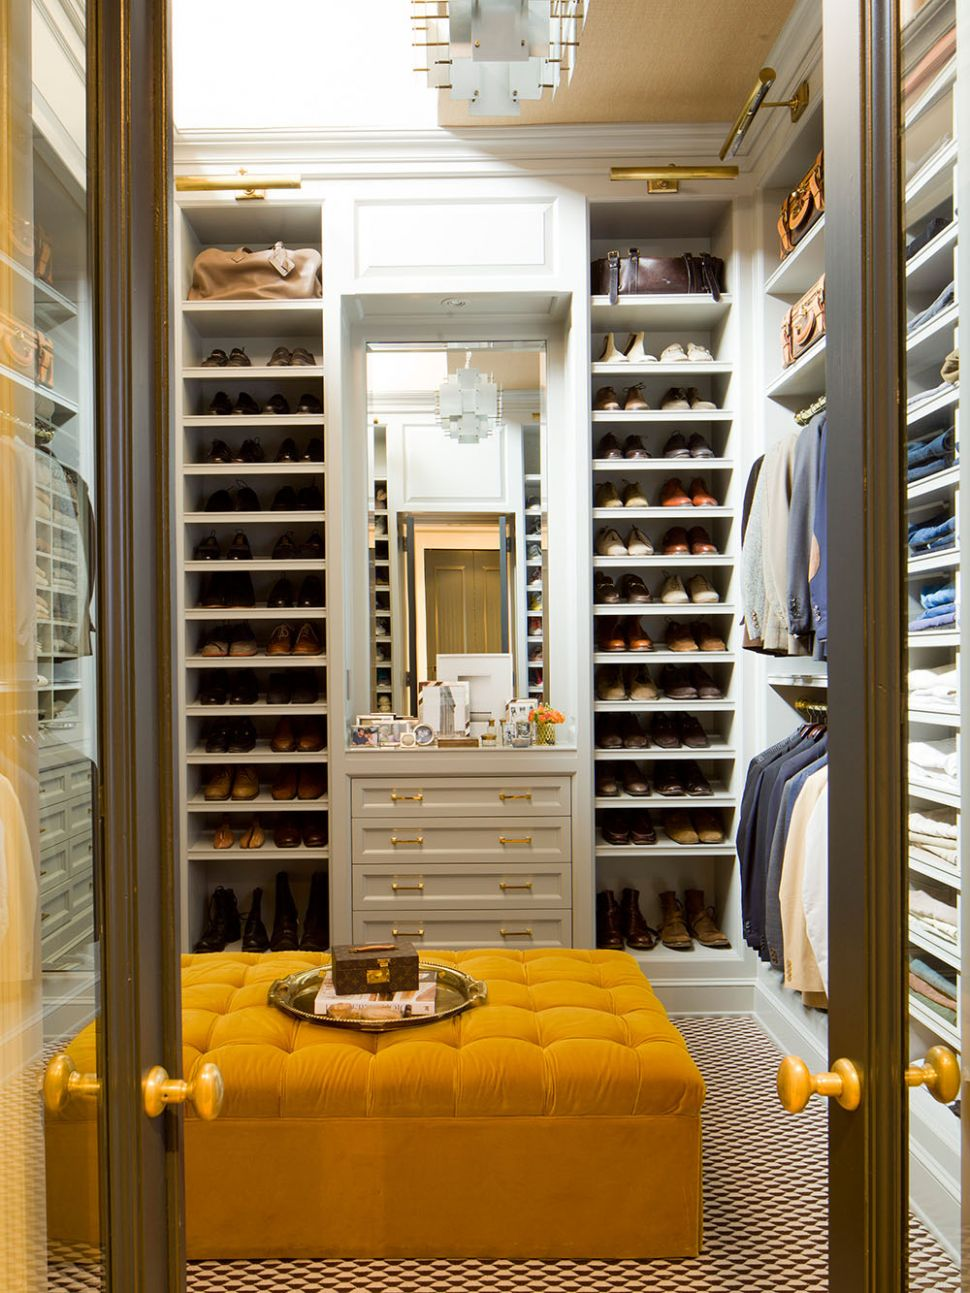 11 Walk-in Closet Ideas for Men Who Love Their Image | Freshome